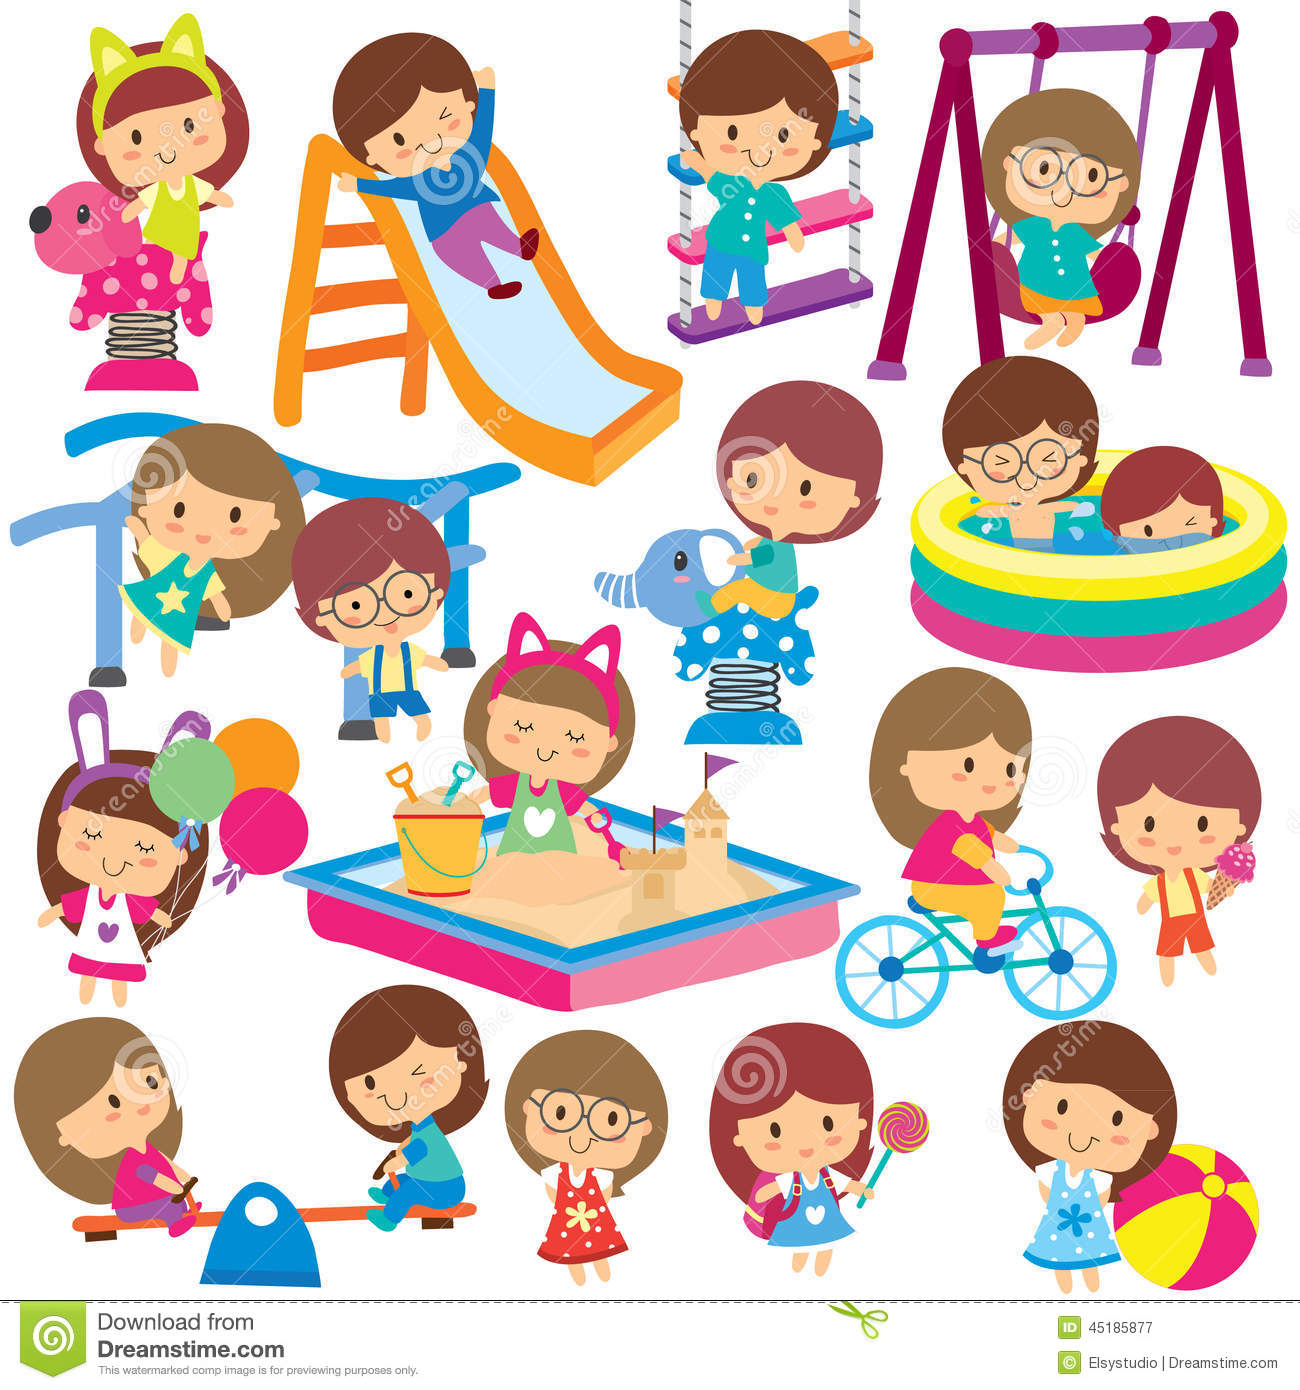 Clipart leisure activities.